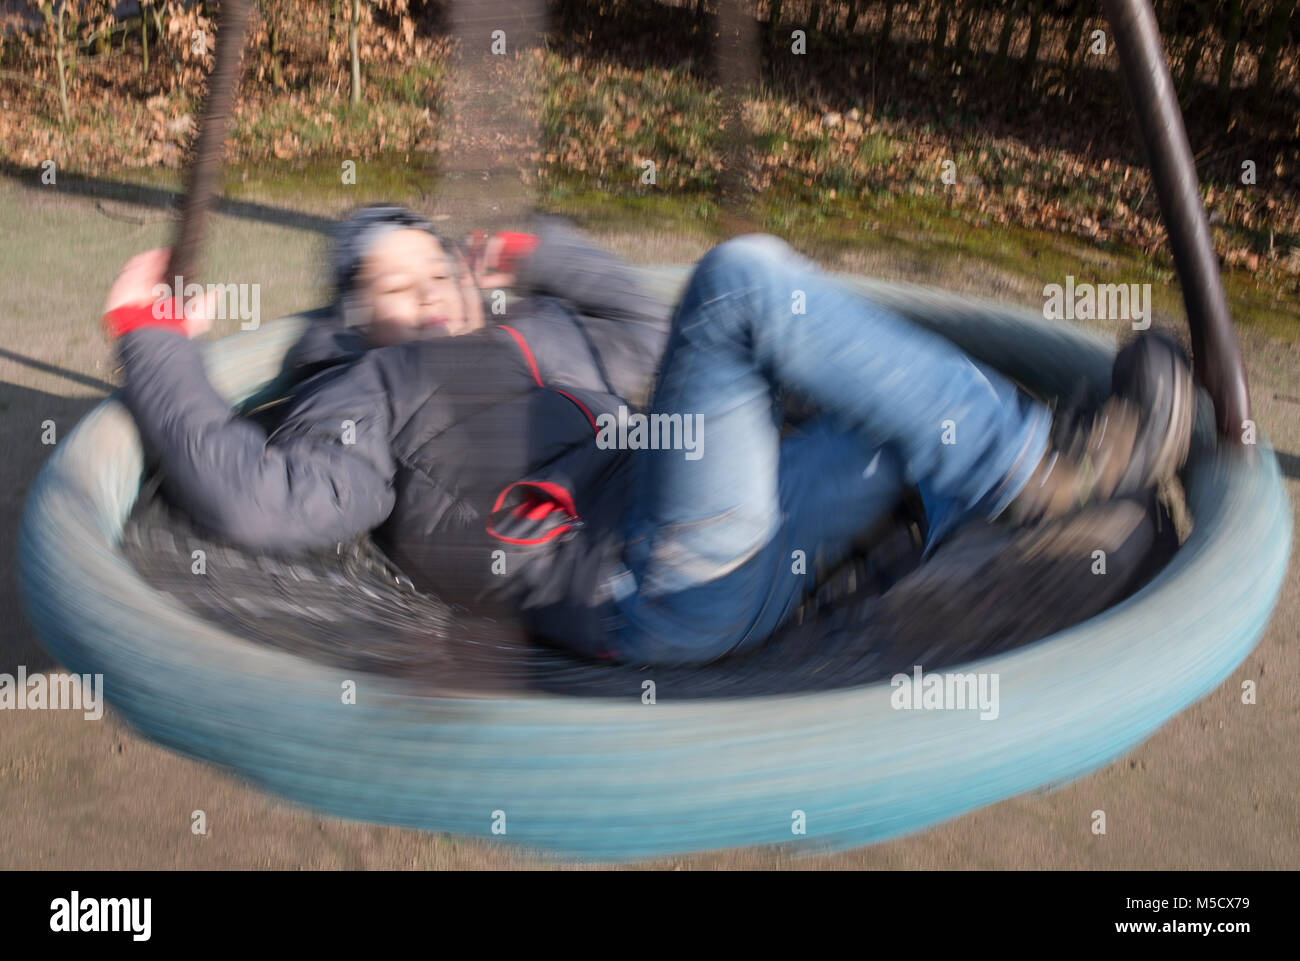 Boy swinging, whirling on a swing, playground. Blurred by motion and speed. - Stock Image